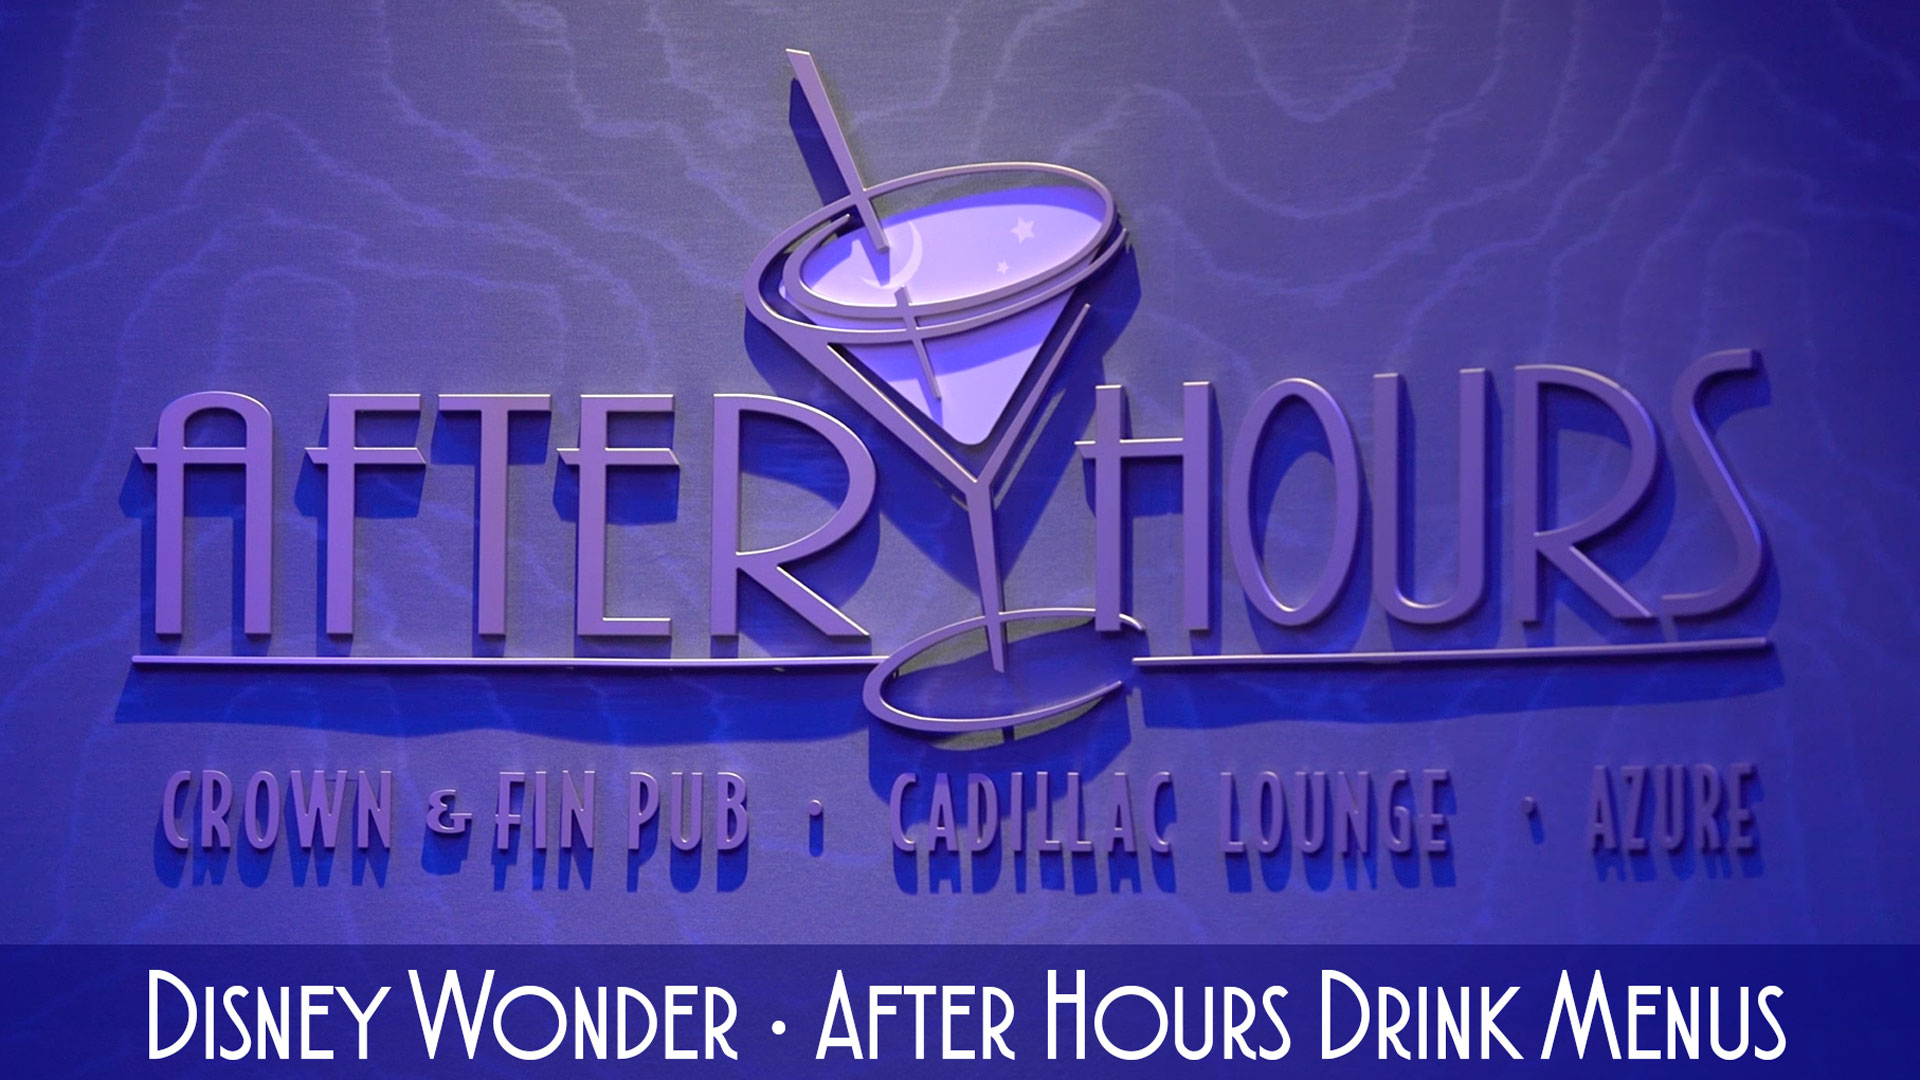 Disney Wonder After Hours Drink Menus